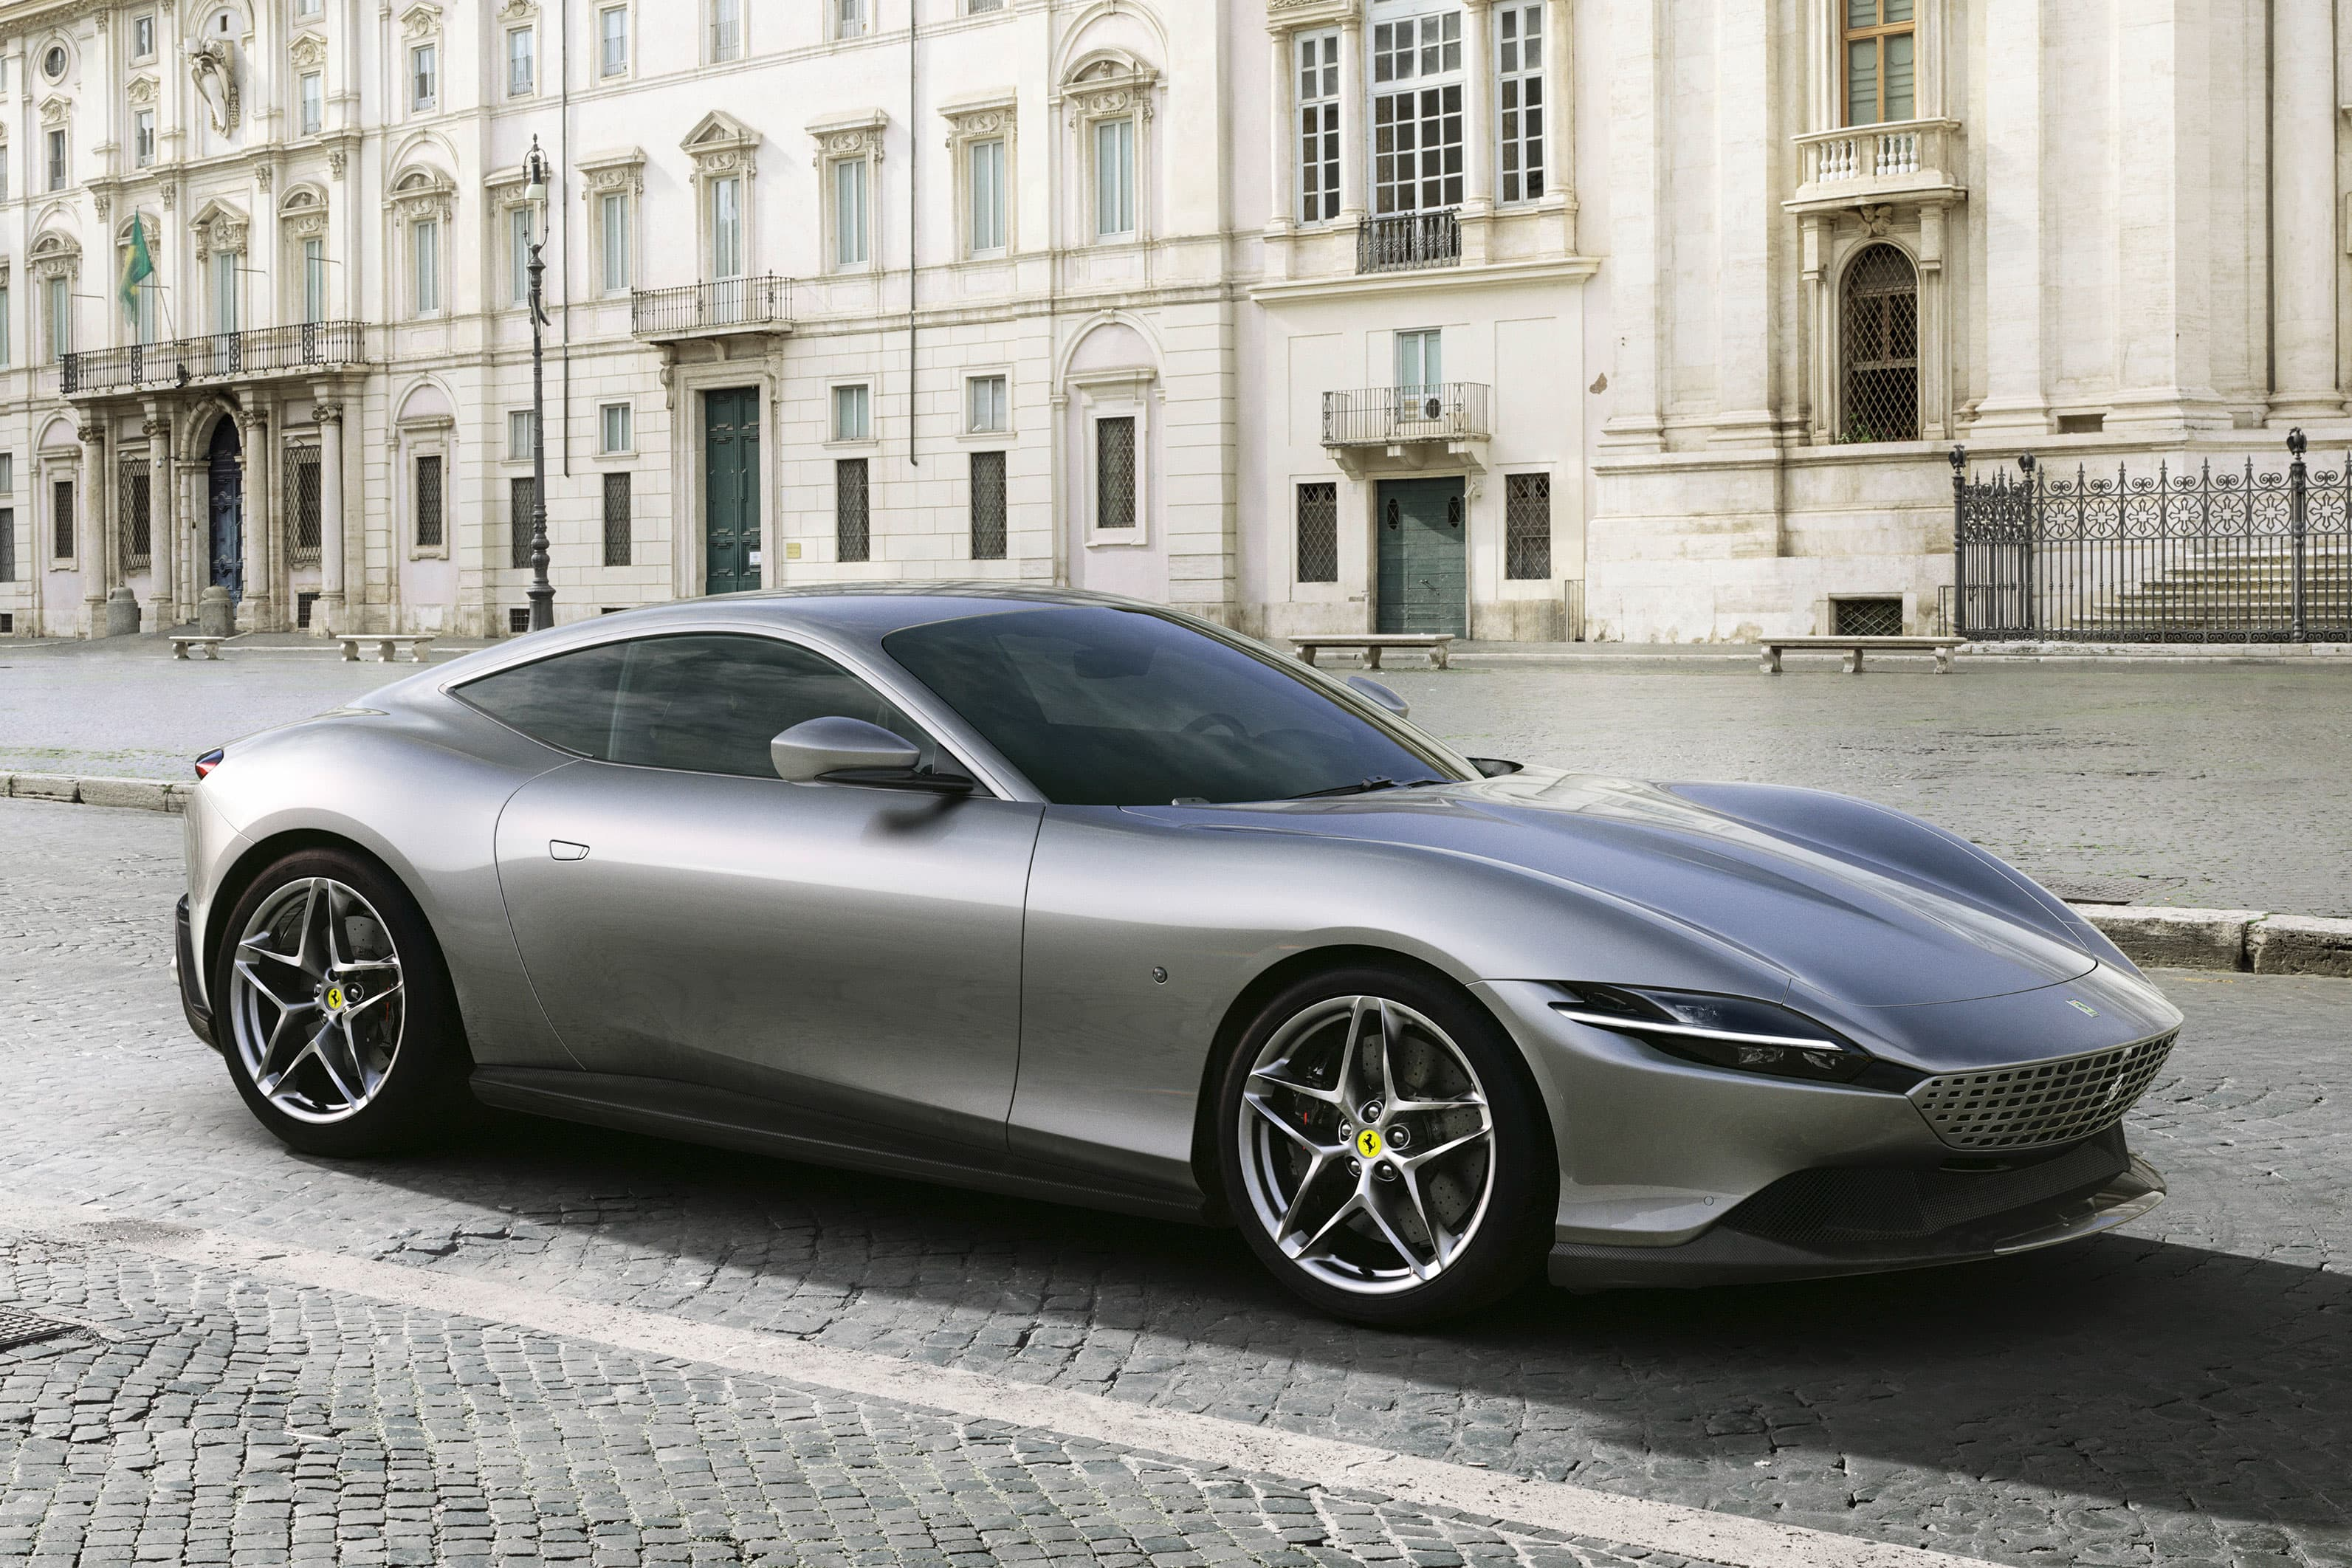 Ferrari unveils new 600-horsepower 'Roma' model